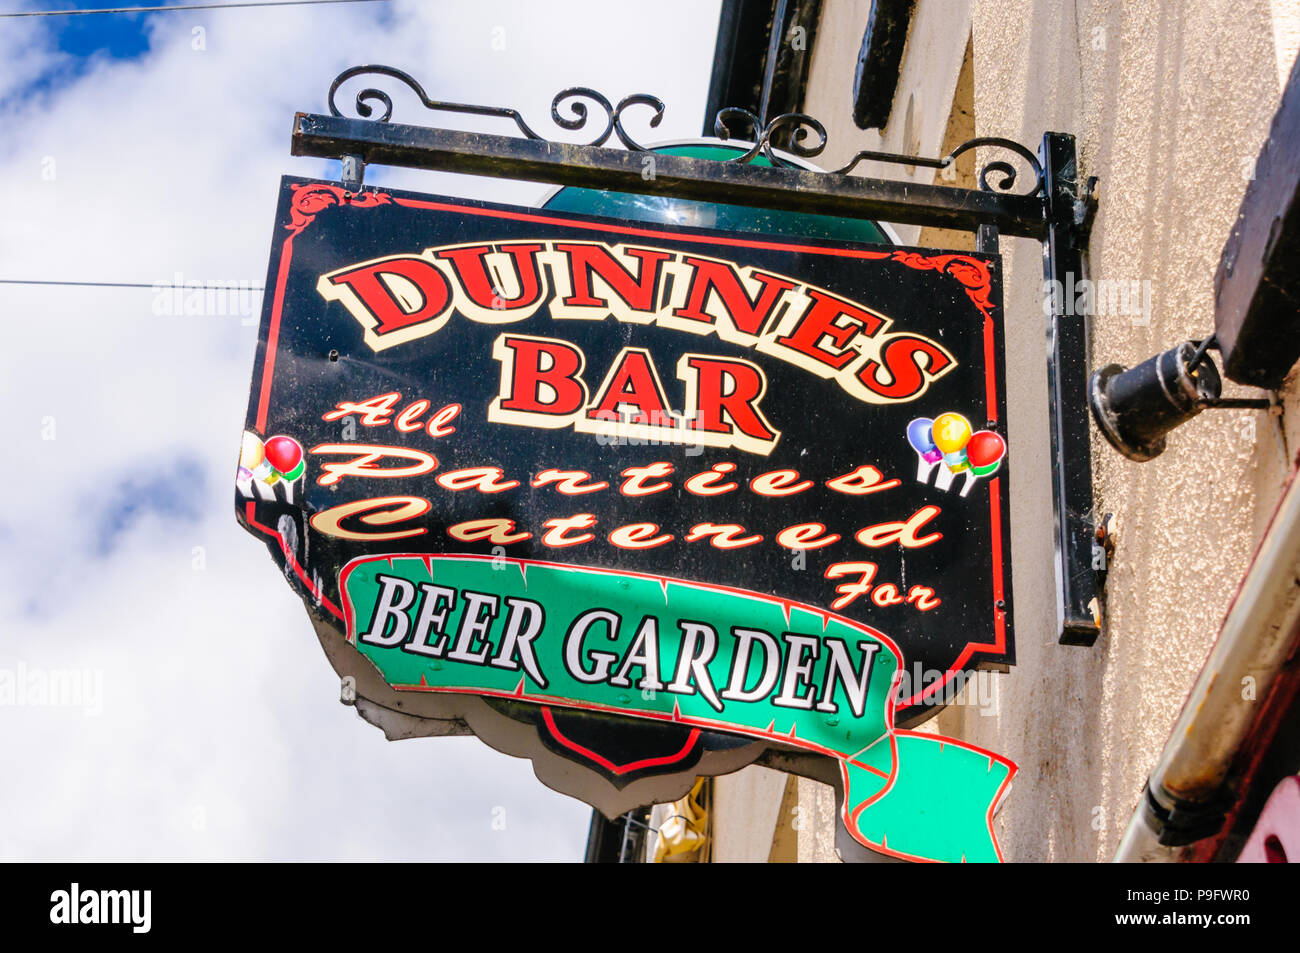 Sign outside a pub in Ireland advertising parties catered for and that it has a beer garden. - Stock Image